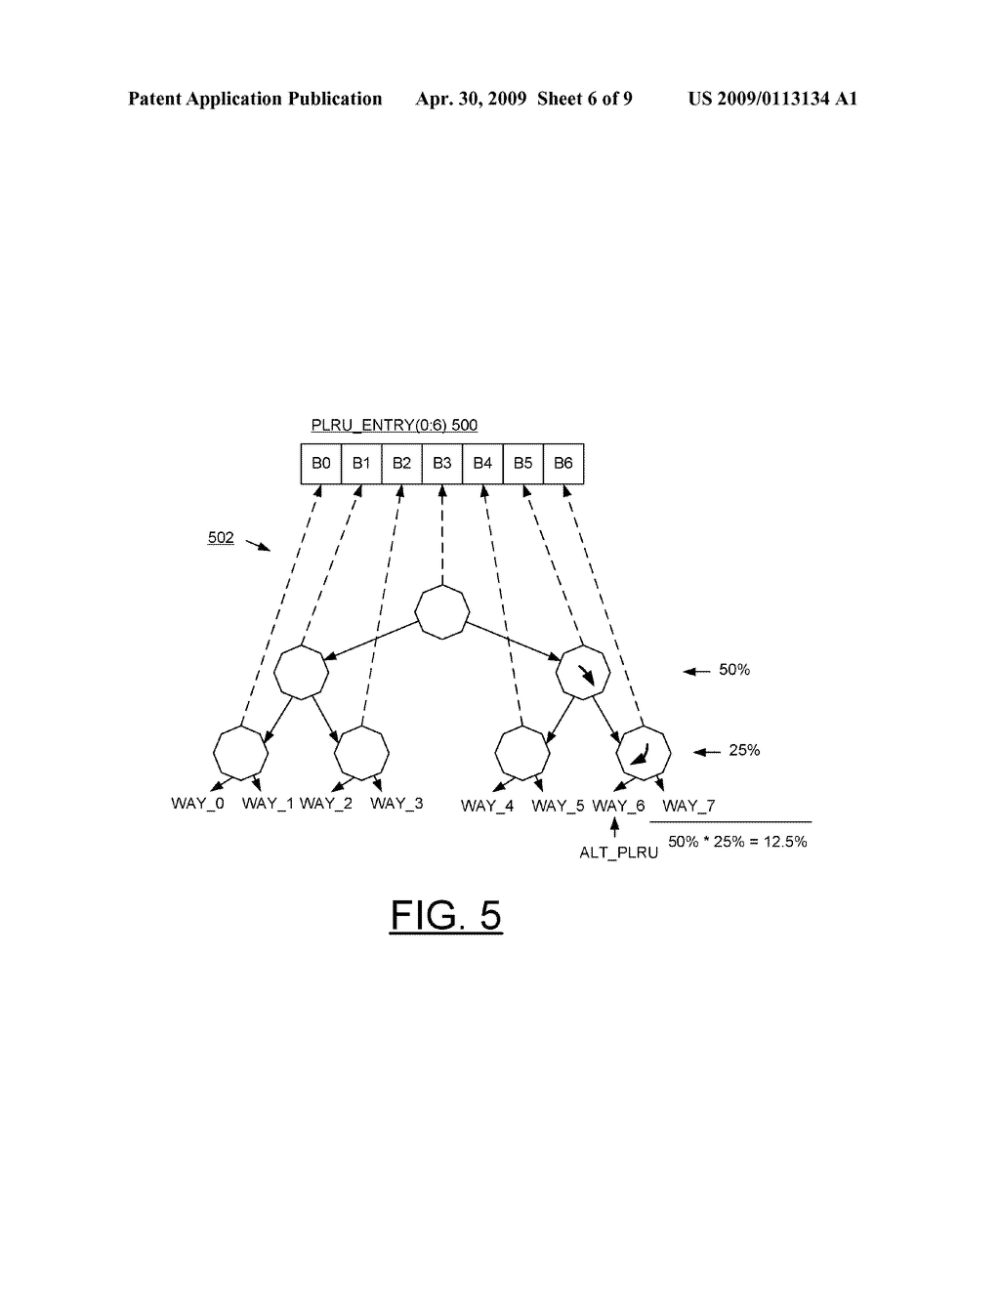 medium resolution of method and cache control circuit for replacing cache lines using alternate plru algorithm and victim cache coherency state diagram schematic